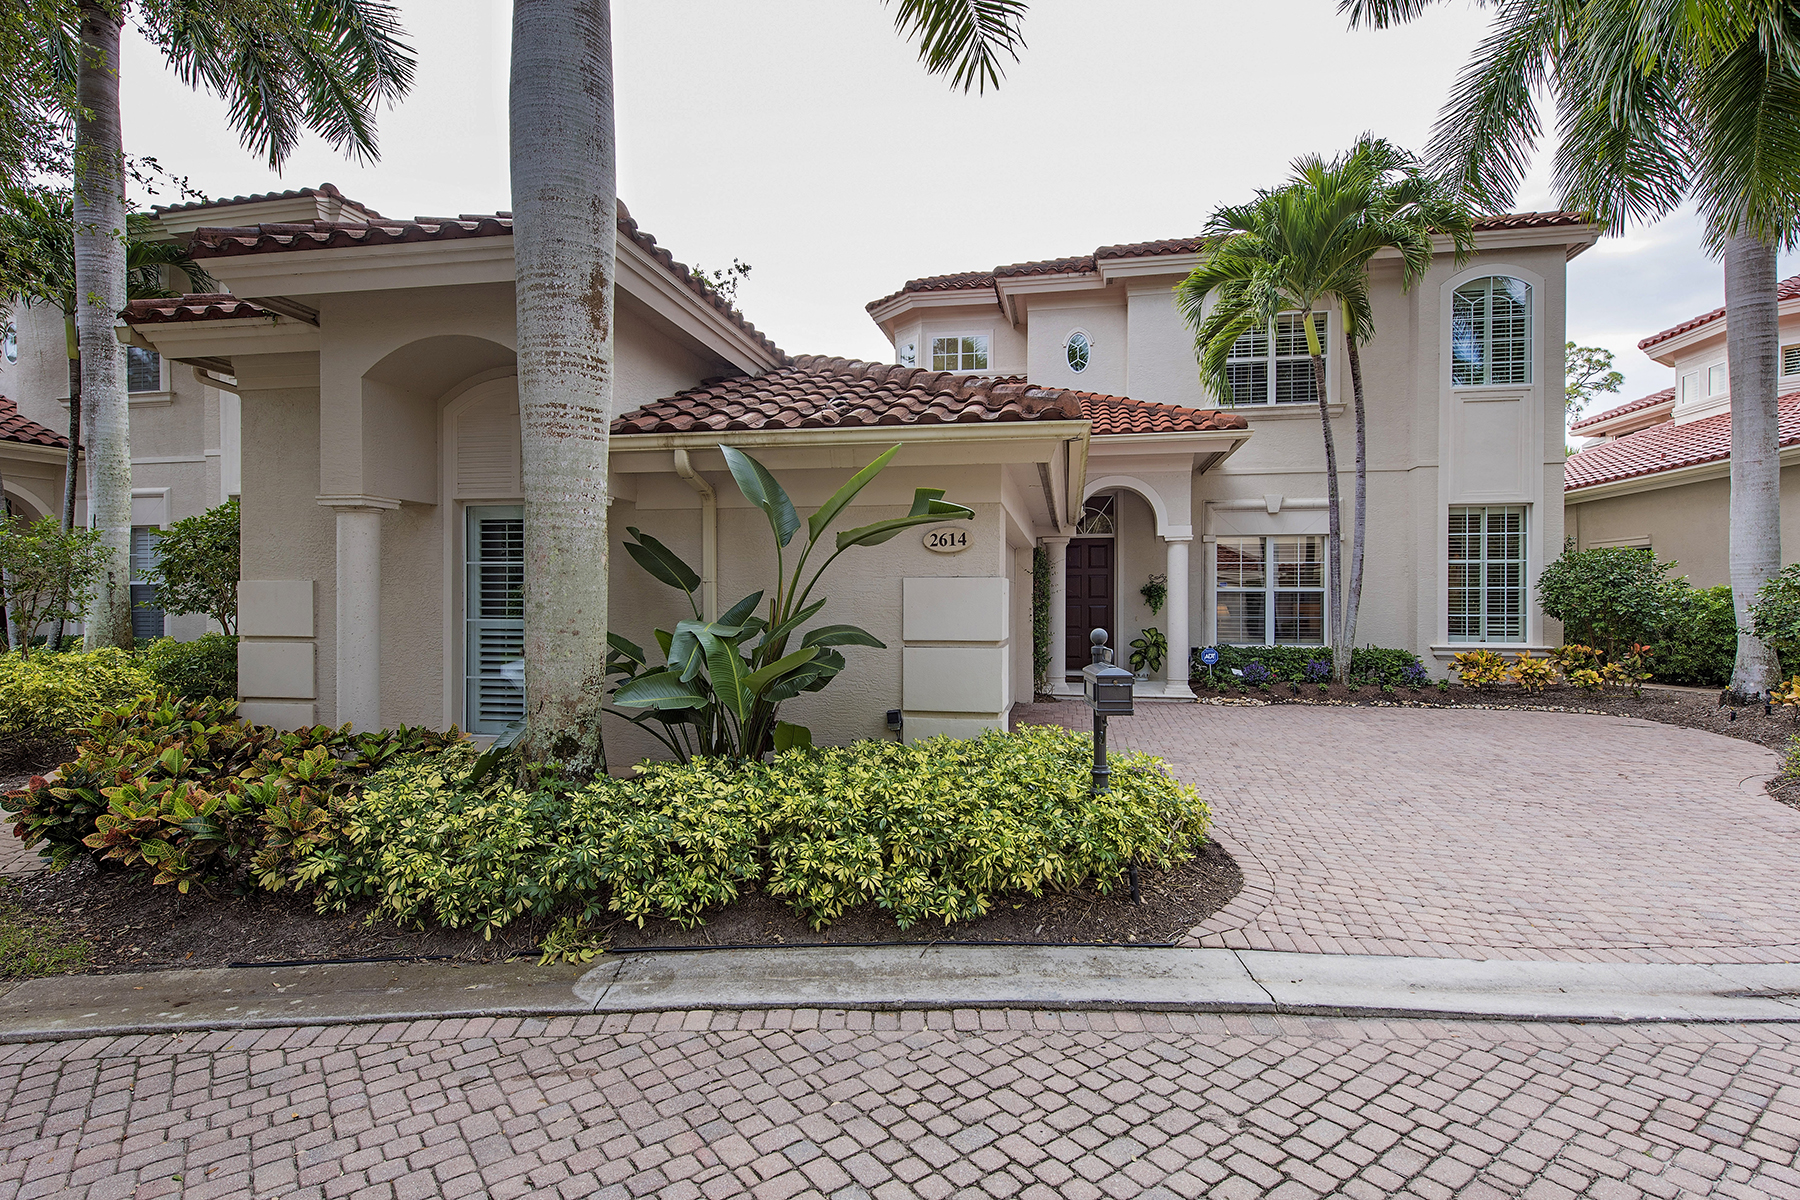 Single Family Home for Sale at GREY OAKS - L'ERMITAGE AT GREY OAKS 2614 Lermitage Ln Naples, Florida, 34105 United States